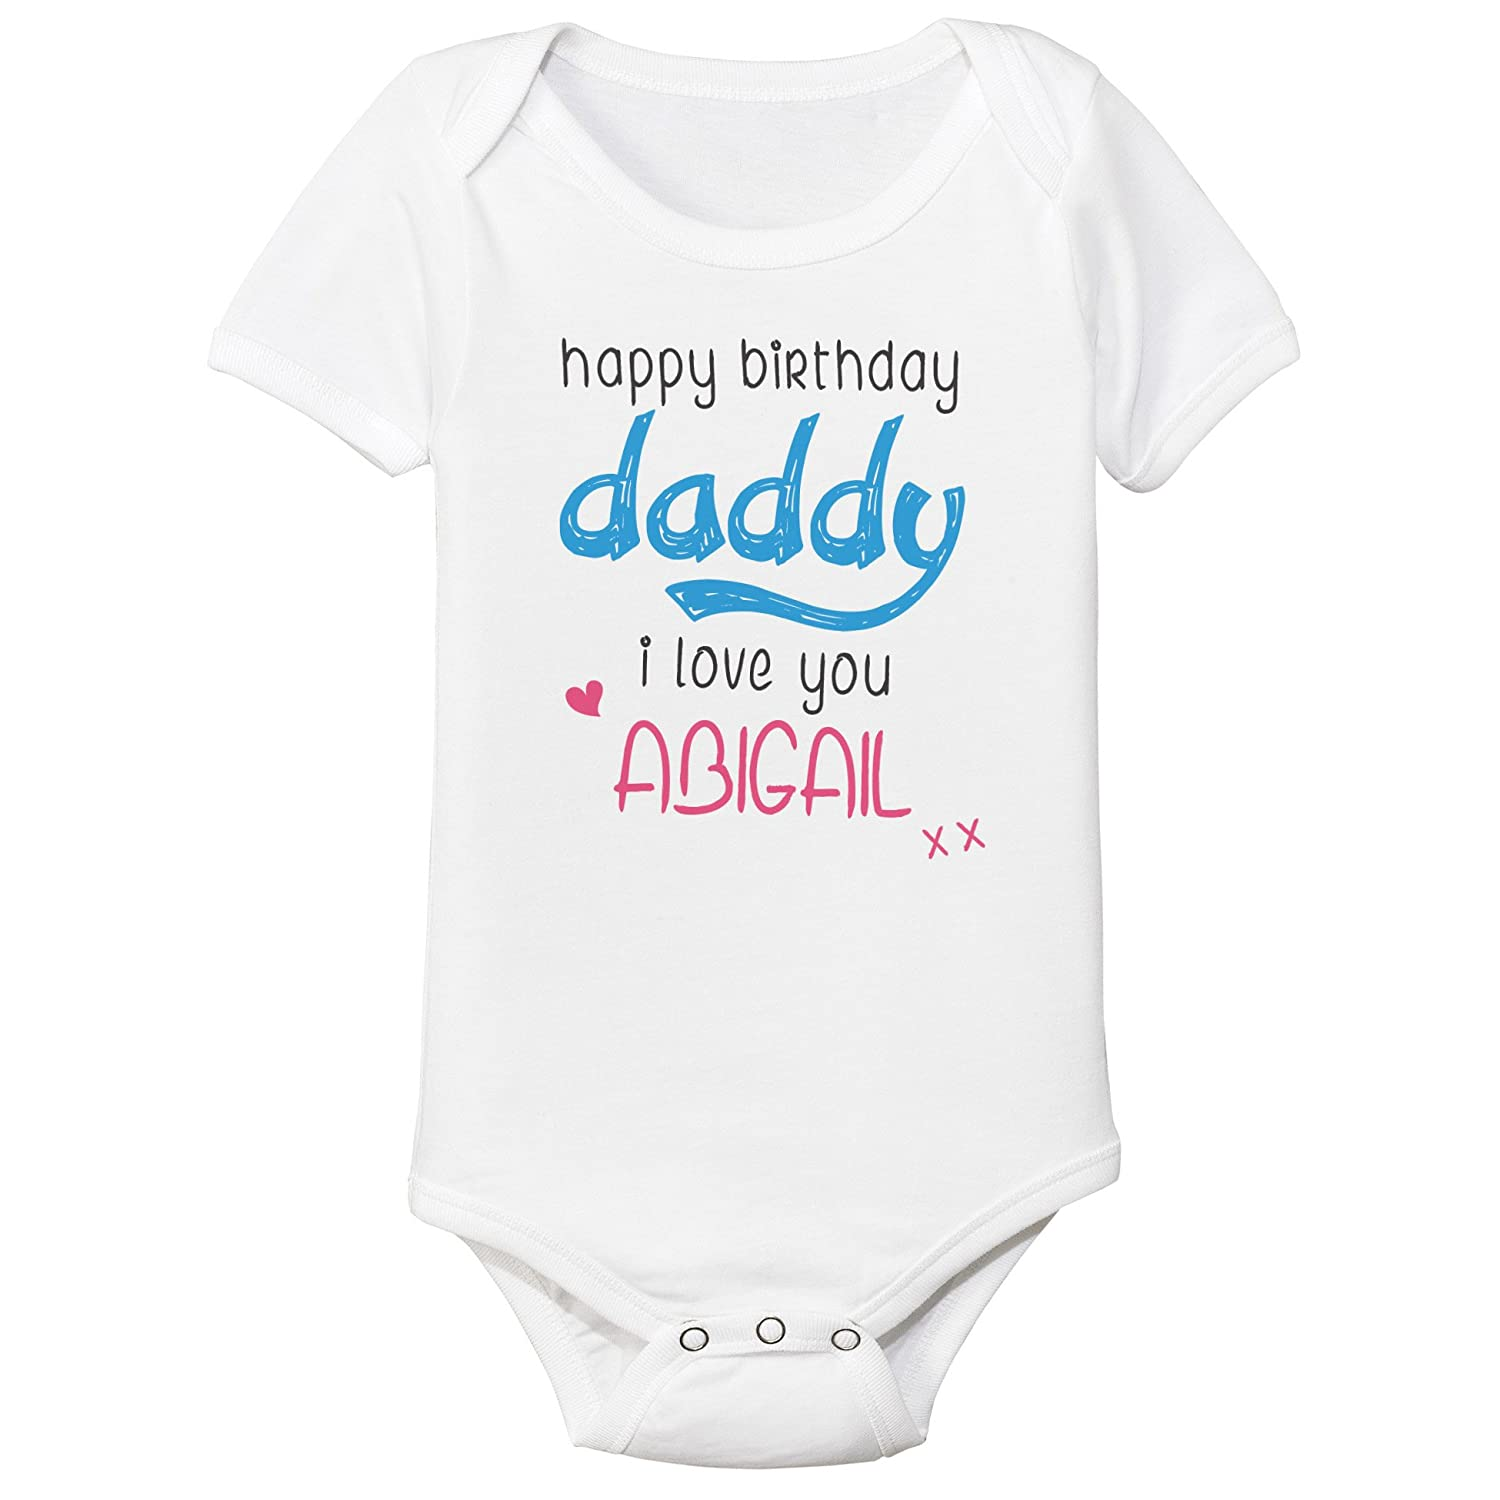 Personalised Happy Birthday Daddy Mummy i love you Name Baby Vest